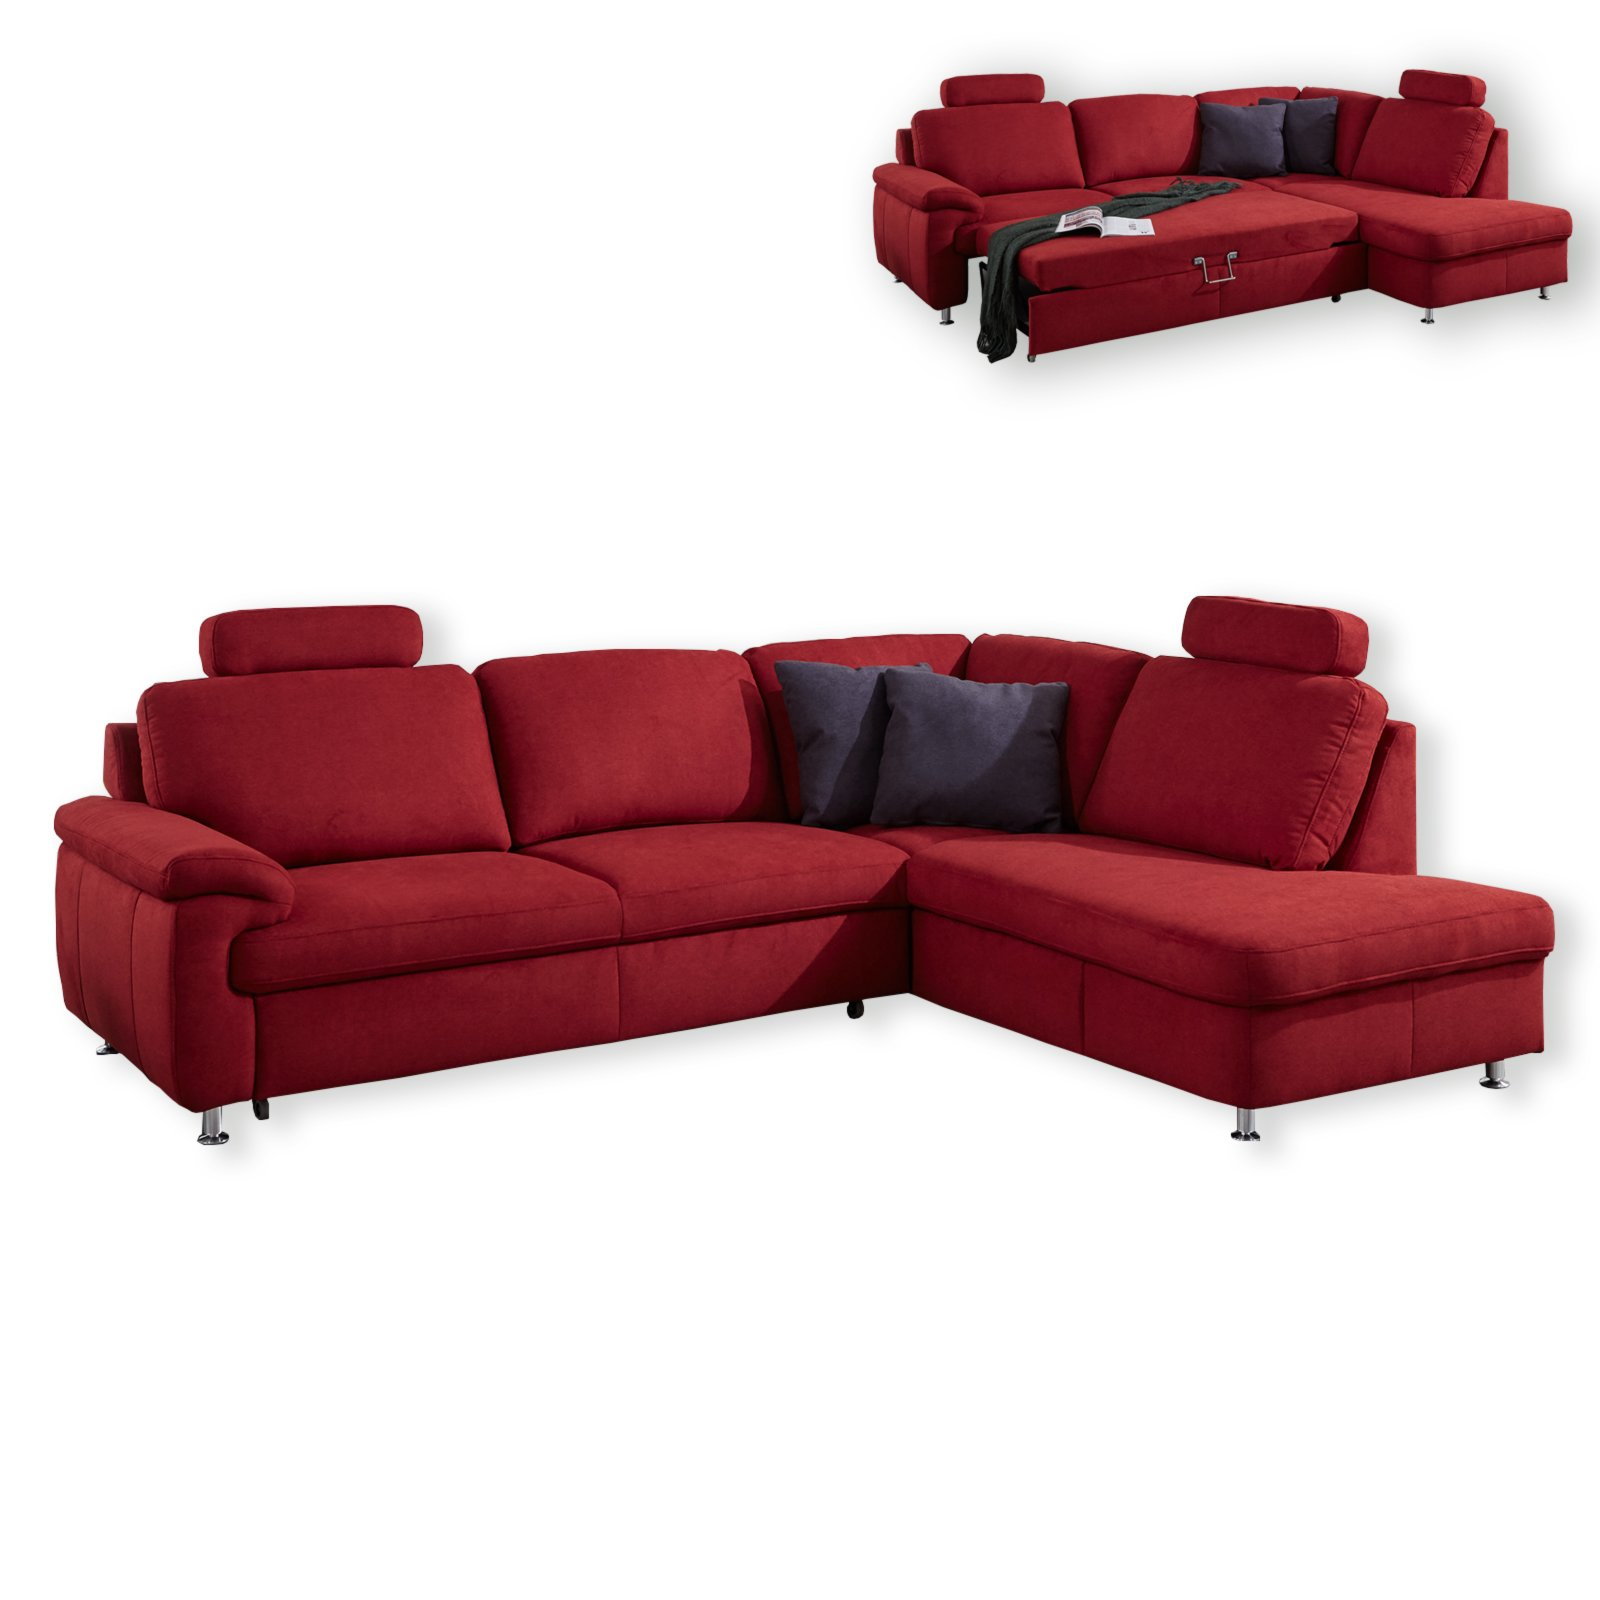 ecksofa bordeaux mit funktionen armlehne links ecksofas l form sofas couches m bel. Black Bedroom Furniture Sets. Home Design Ideas